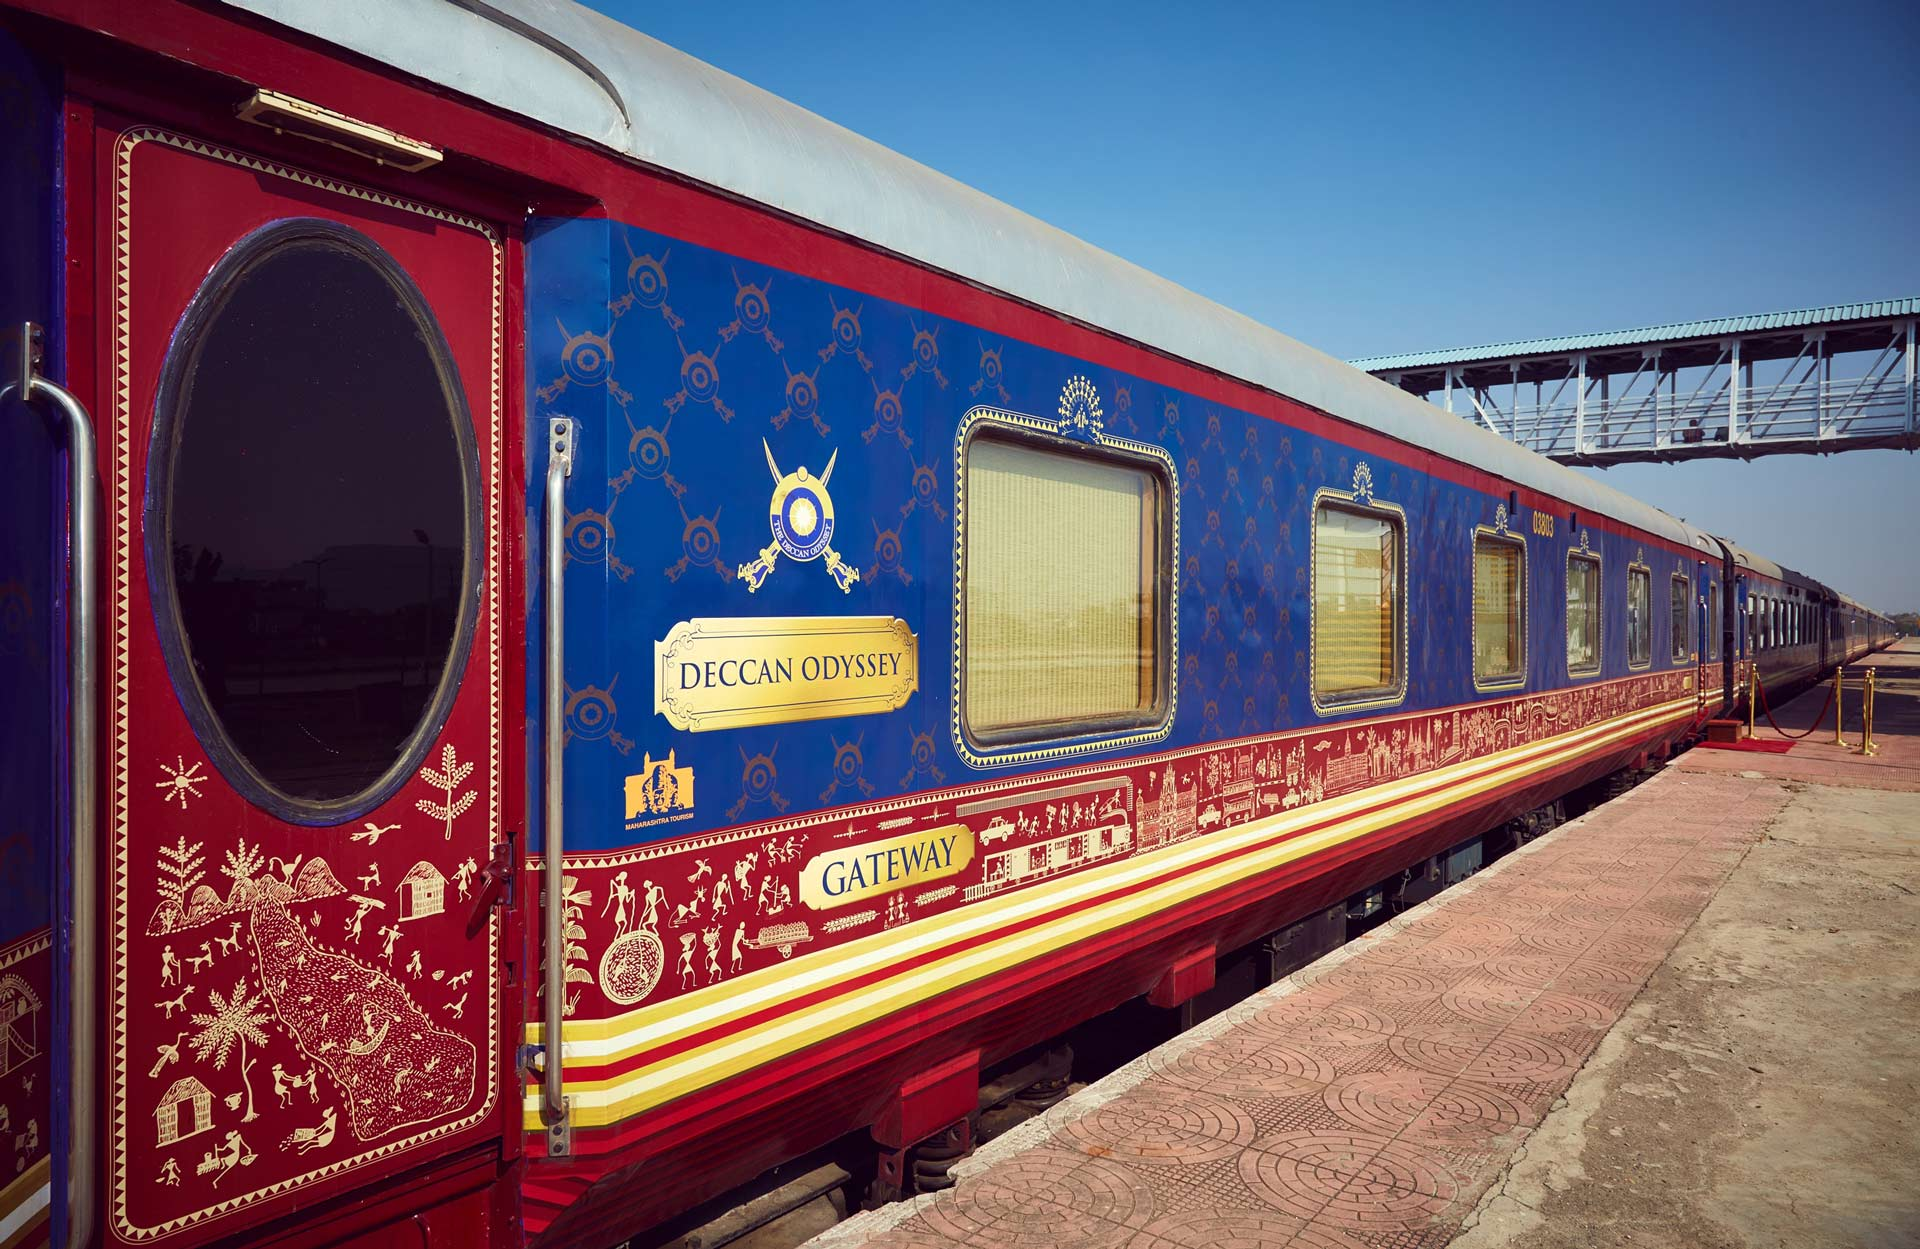 Deccan Odyssey train providing a luxury travel experience magnificent history of India.